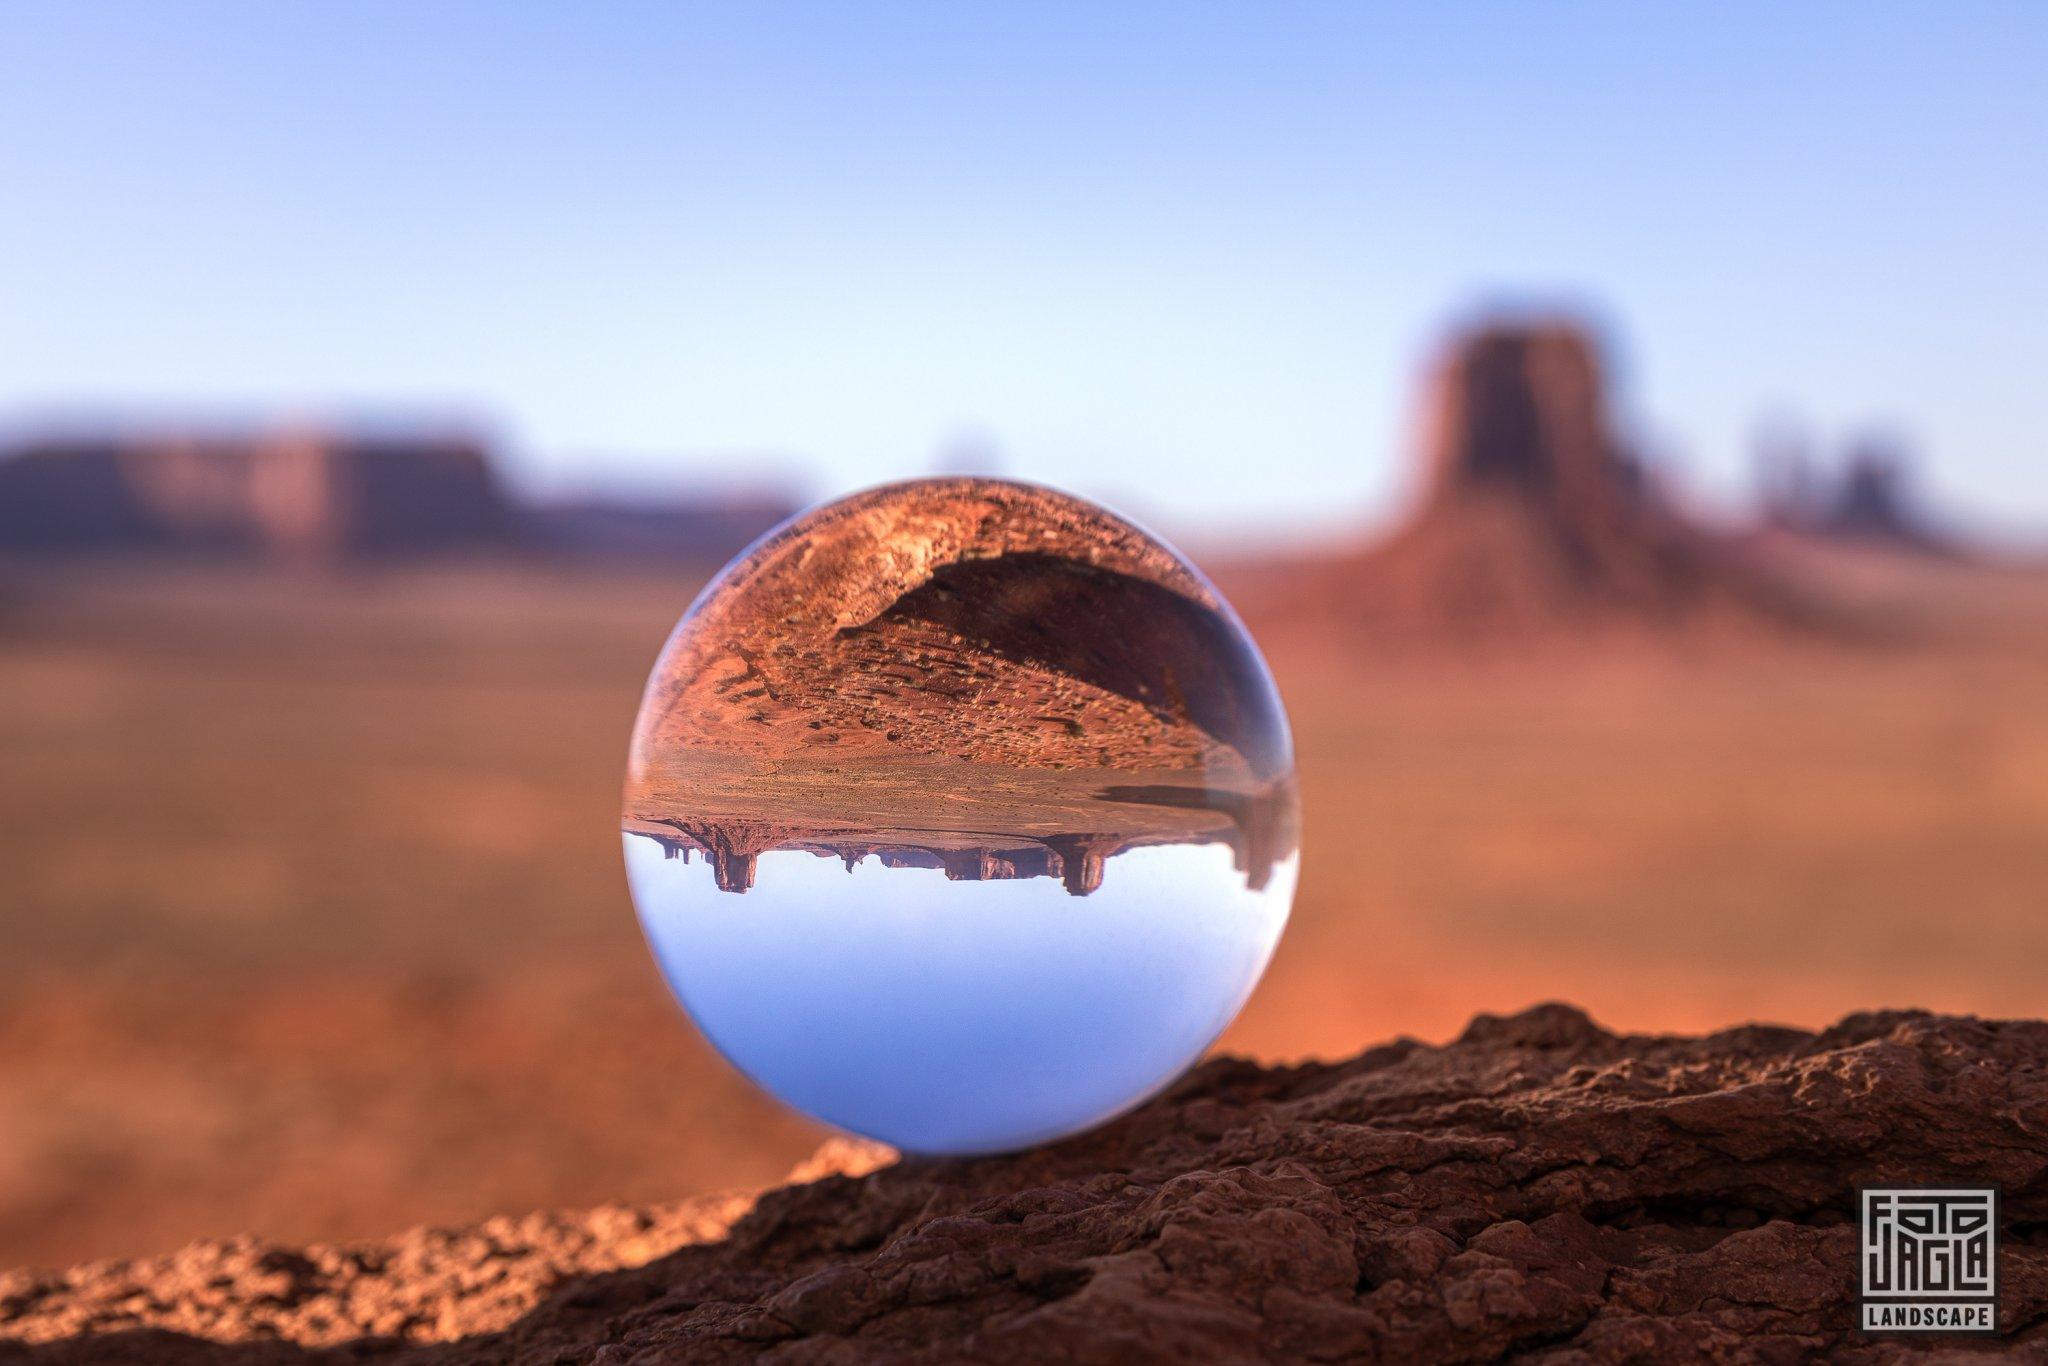 Monument Valley - View through a Lenseball